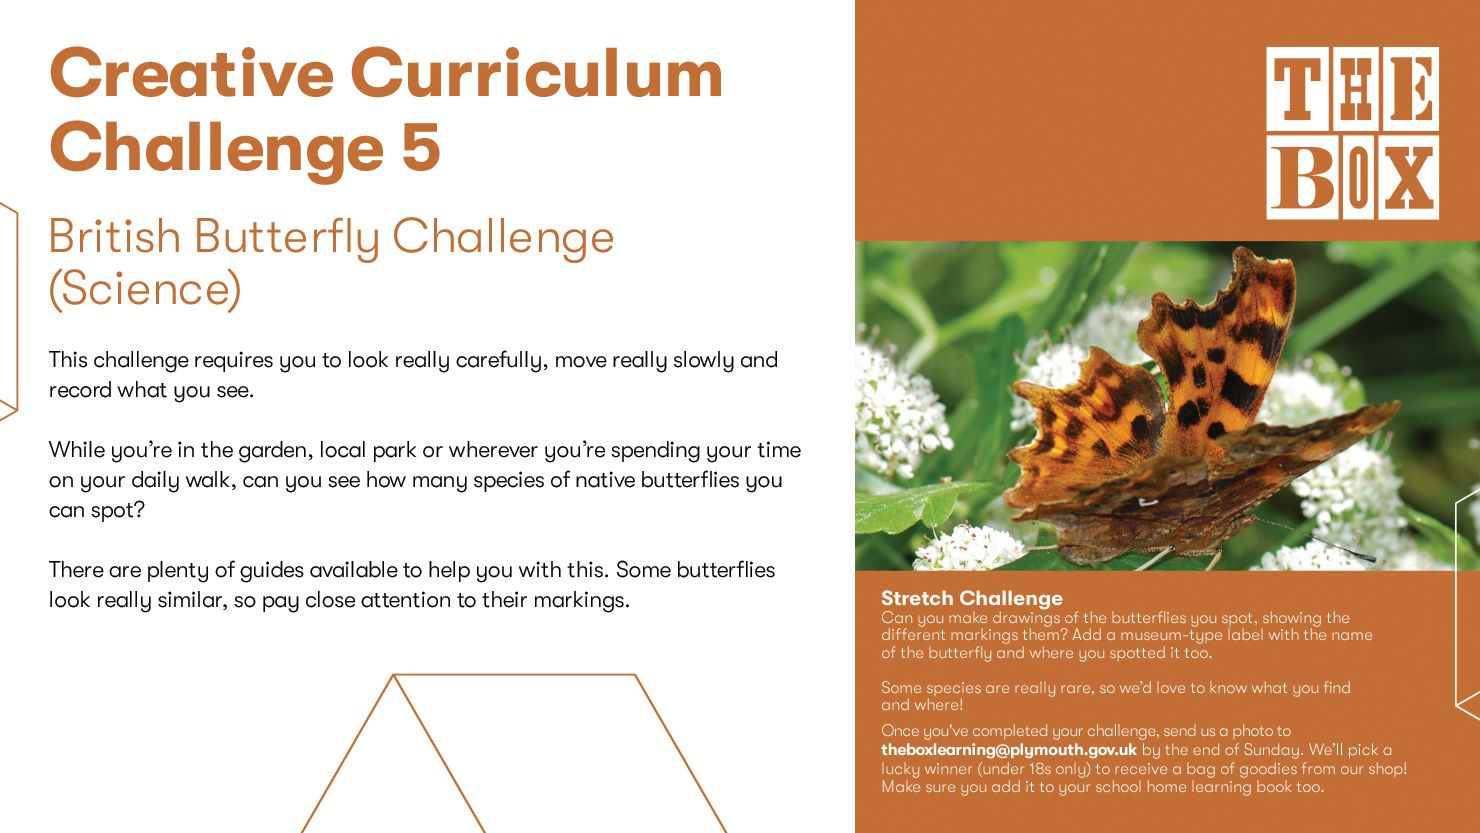 Graphic for The Box's Curriculum Challenge 5